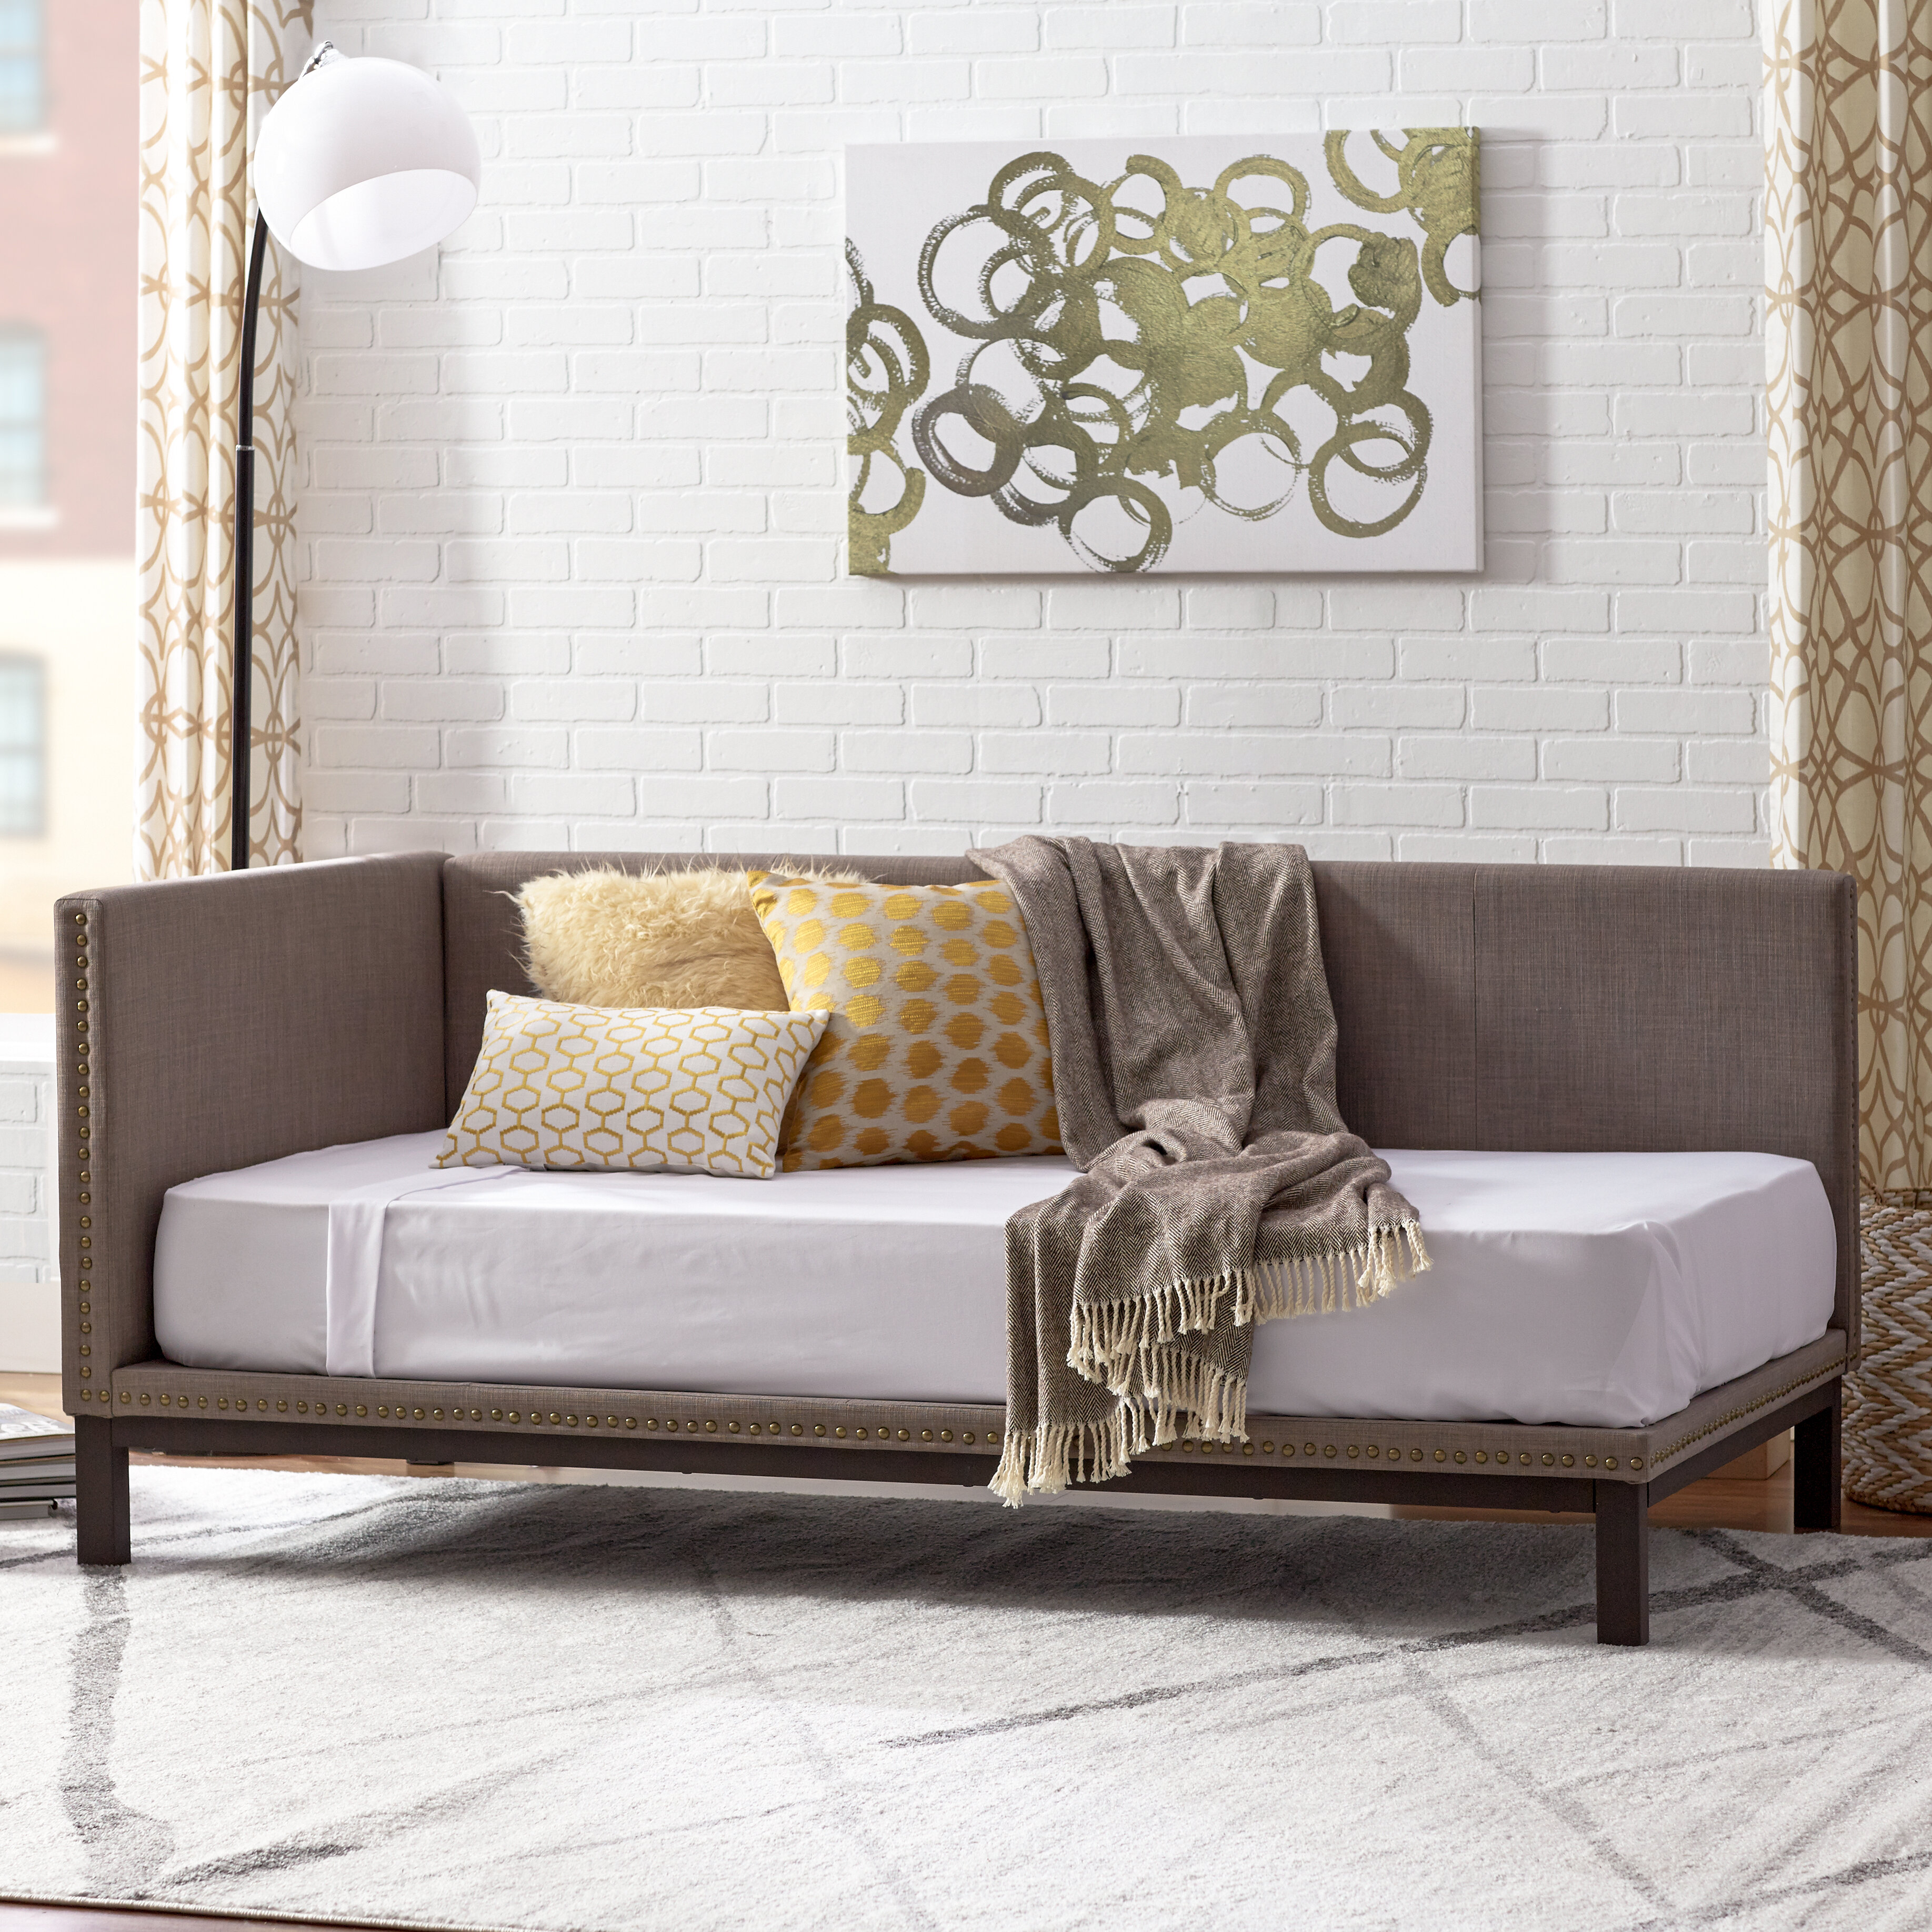 Astounding Carwile Mid Century Daybed Ocoug Best Dining Table And Chair Ideas Images Ocougorg